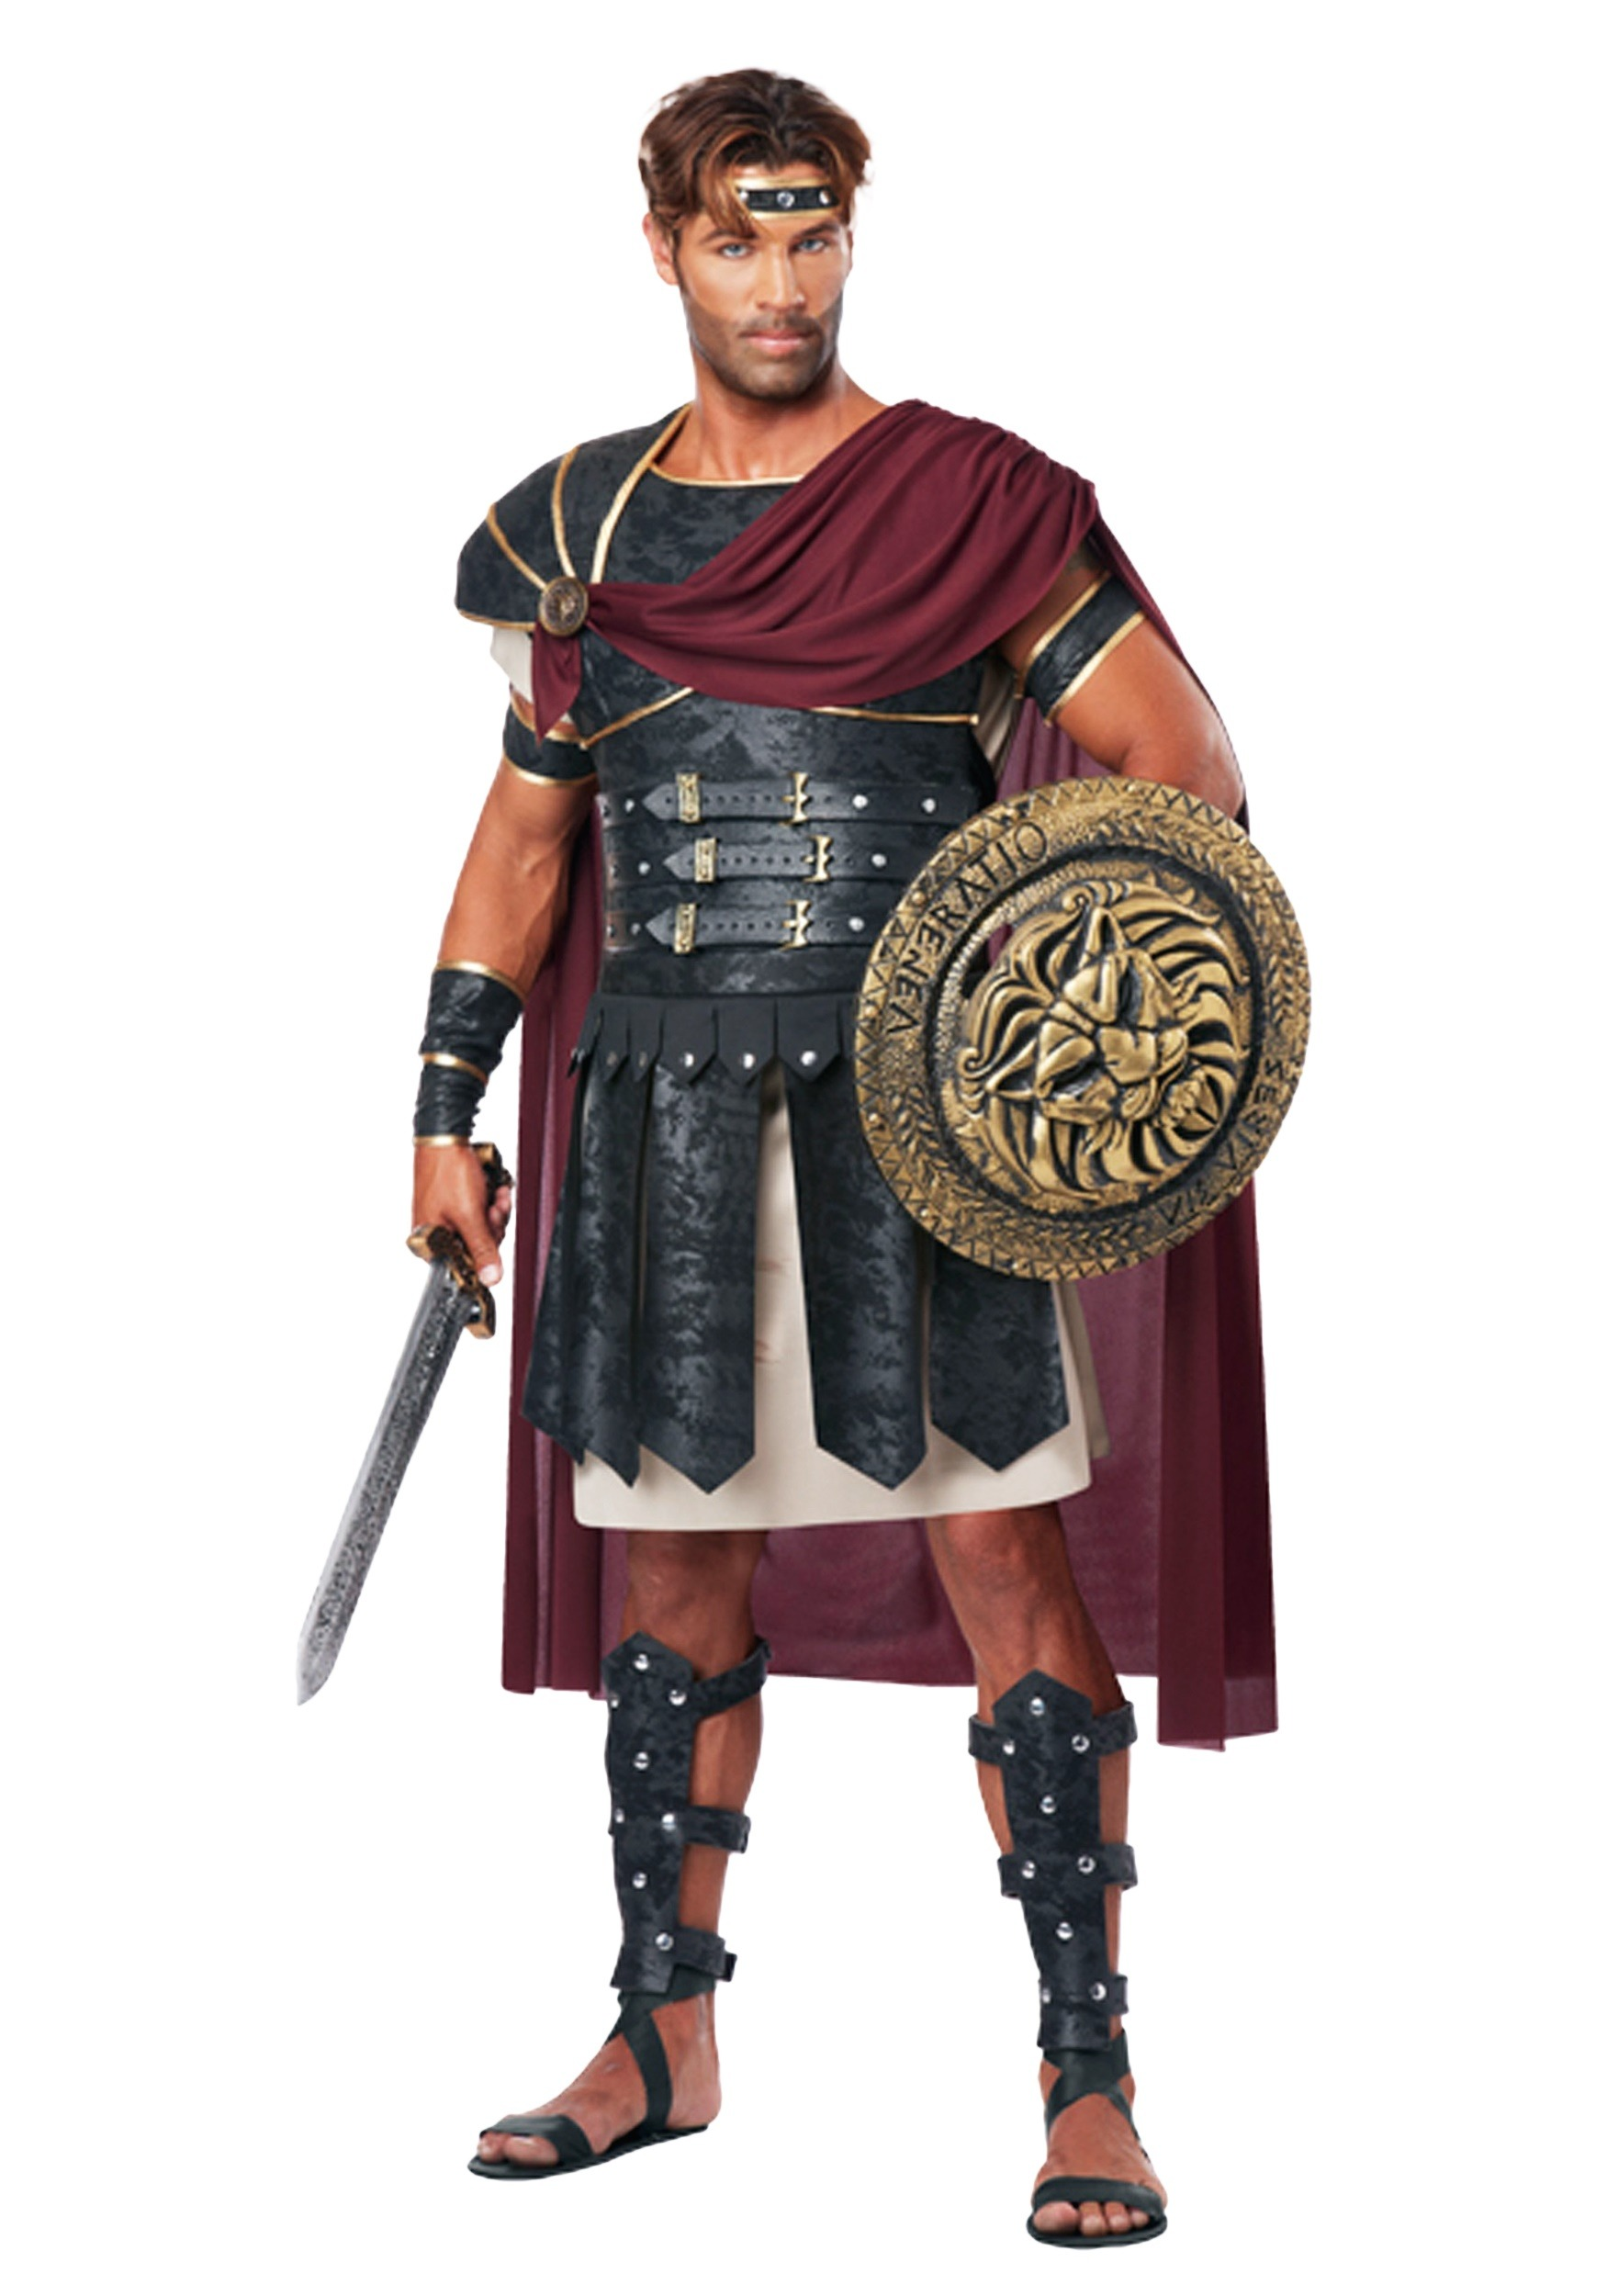 How Did The Myth Of Roman Leather Armbands Begin